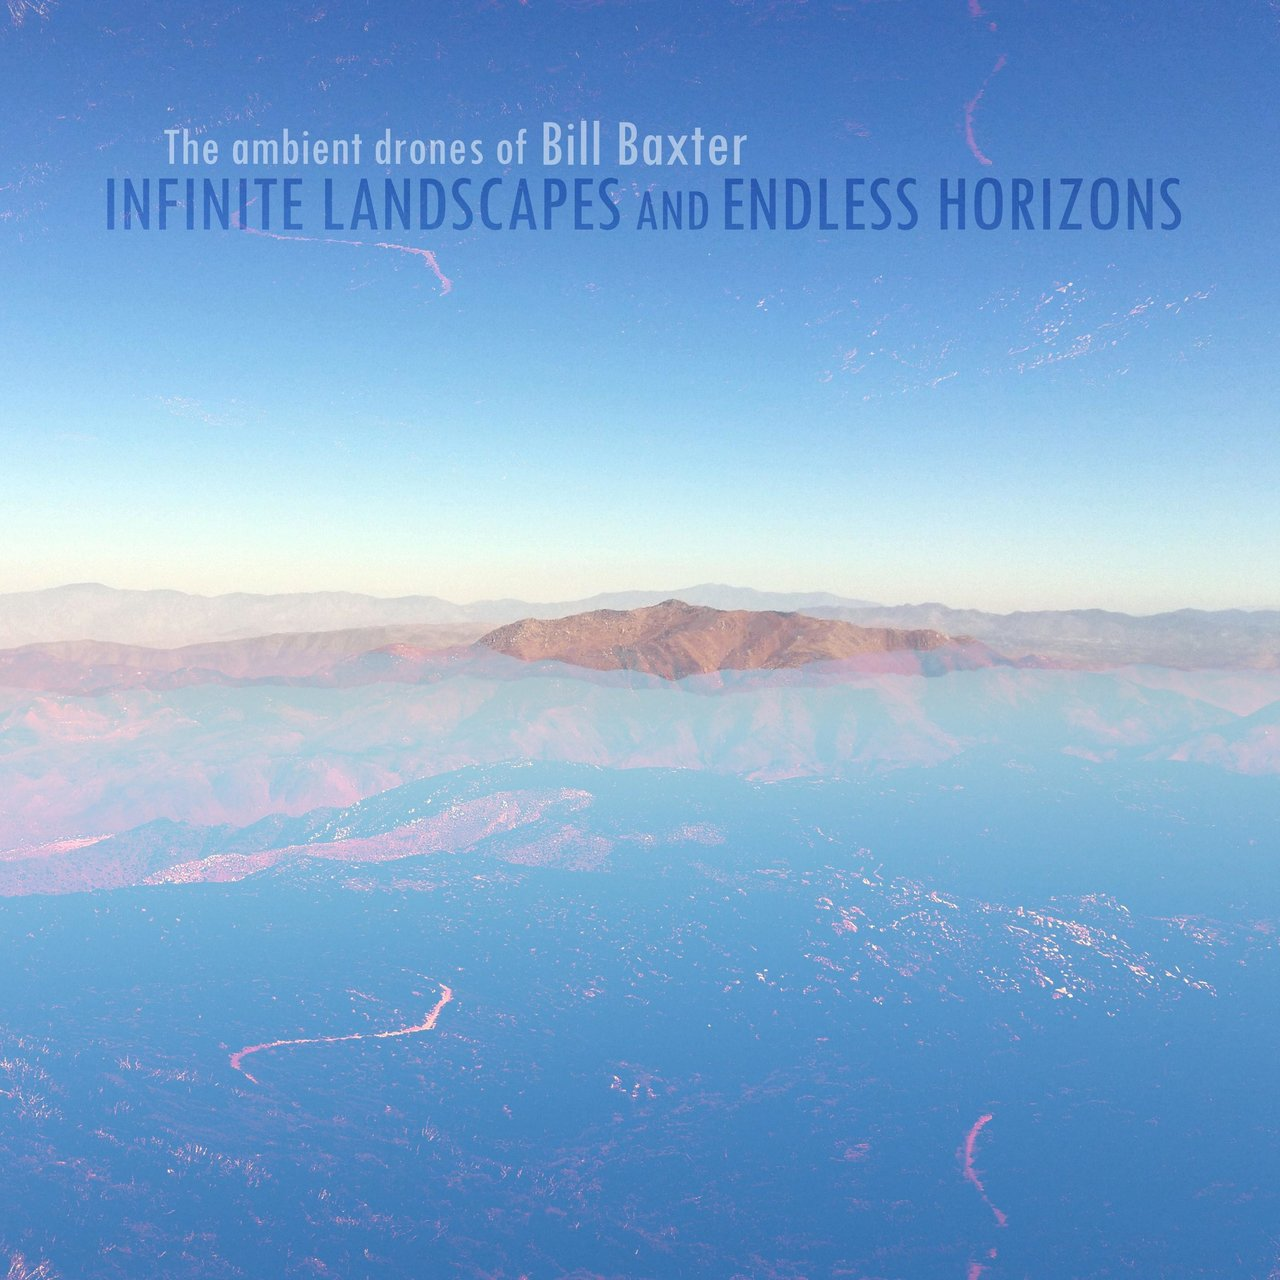 Infinite Landscapes and Endless Horizons